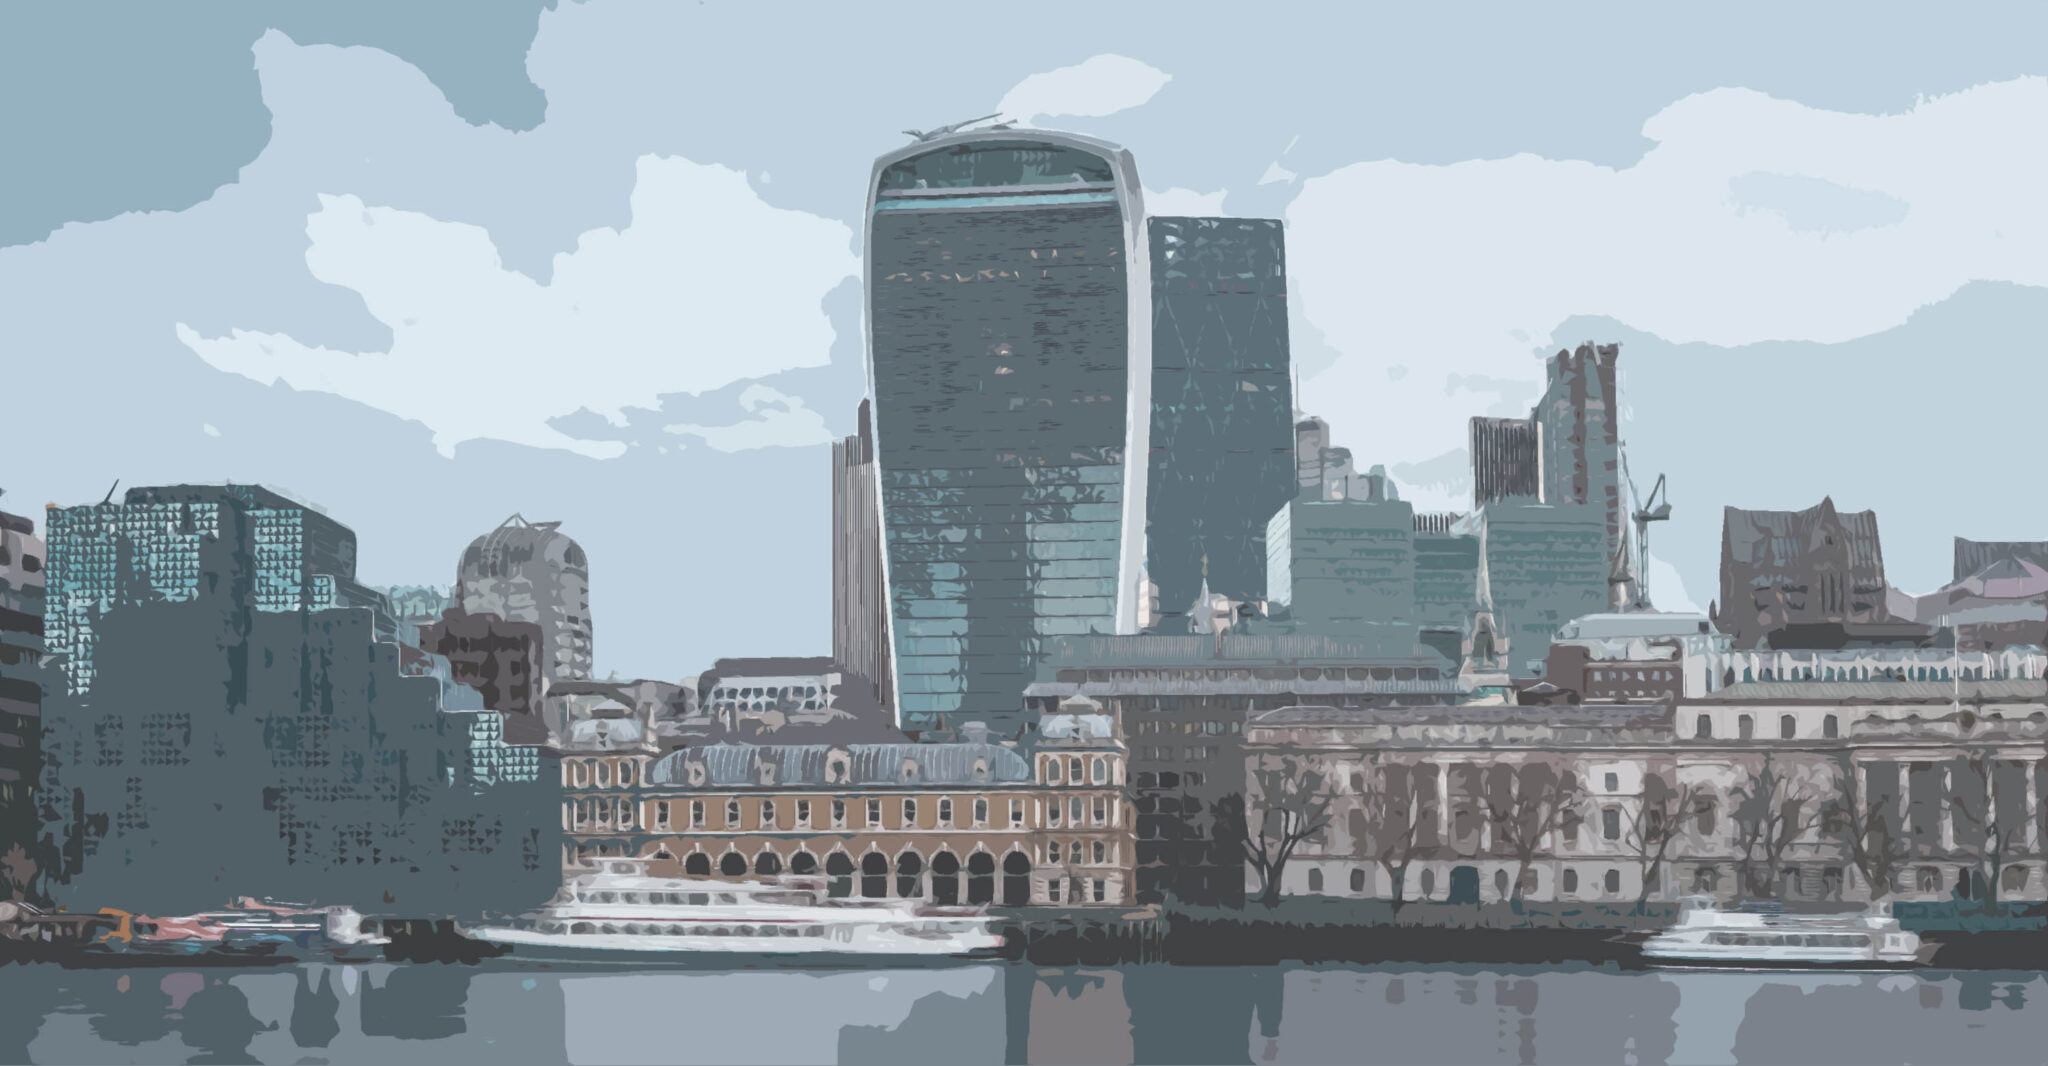 UK prudential regulator sets our LIBOR and ESG in priorities